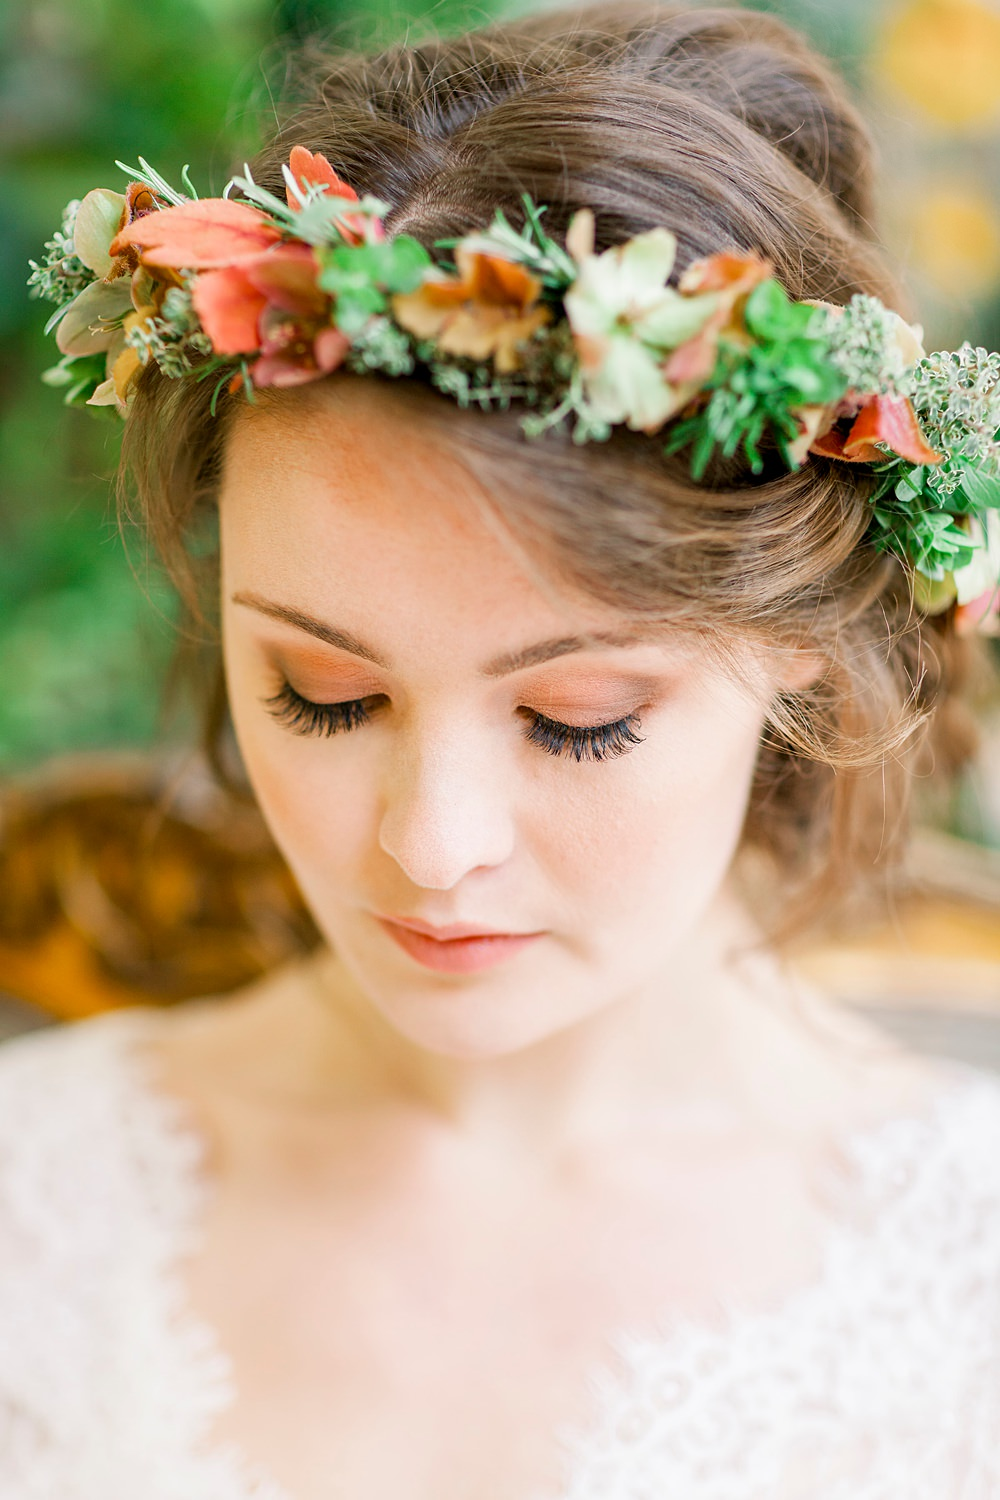 Flower Crown Bride Bridal Make Up Natural Boho Industrial Wedding Ideas Jo Bradbury Photography